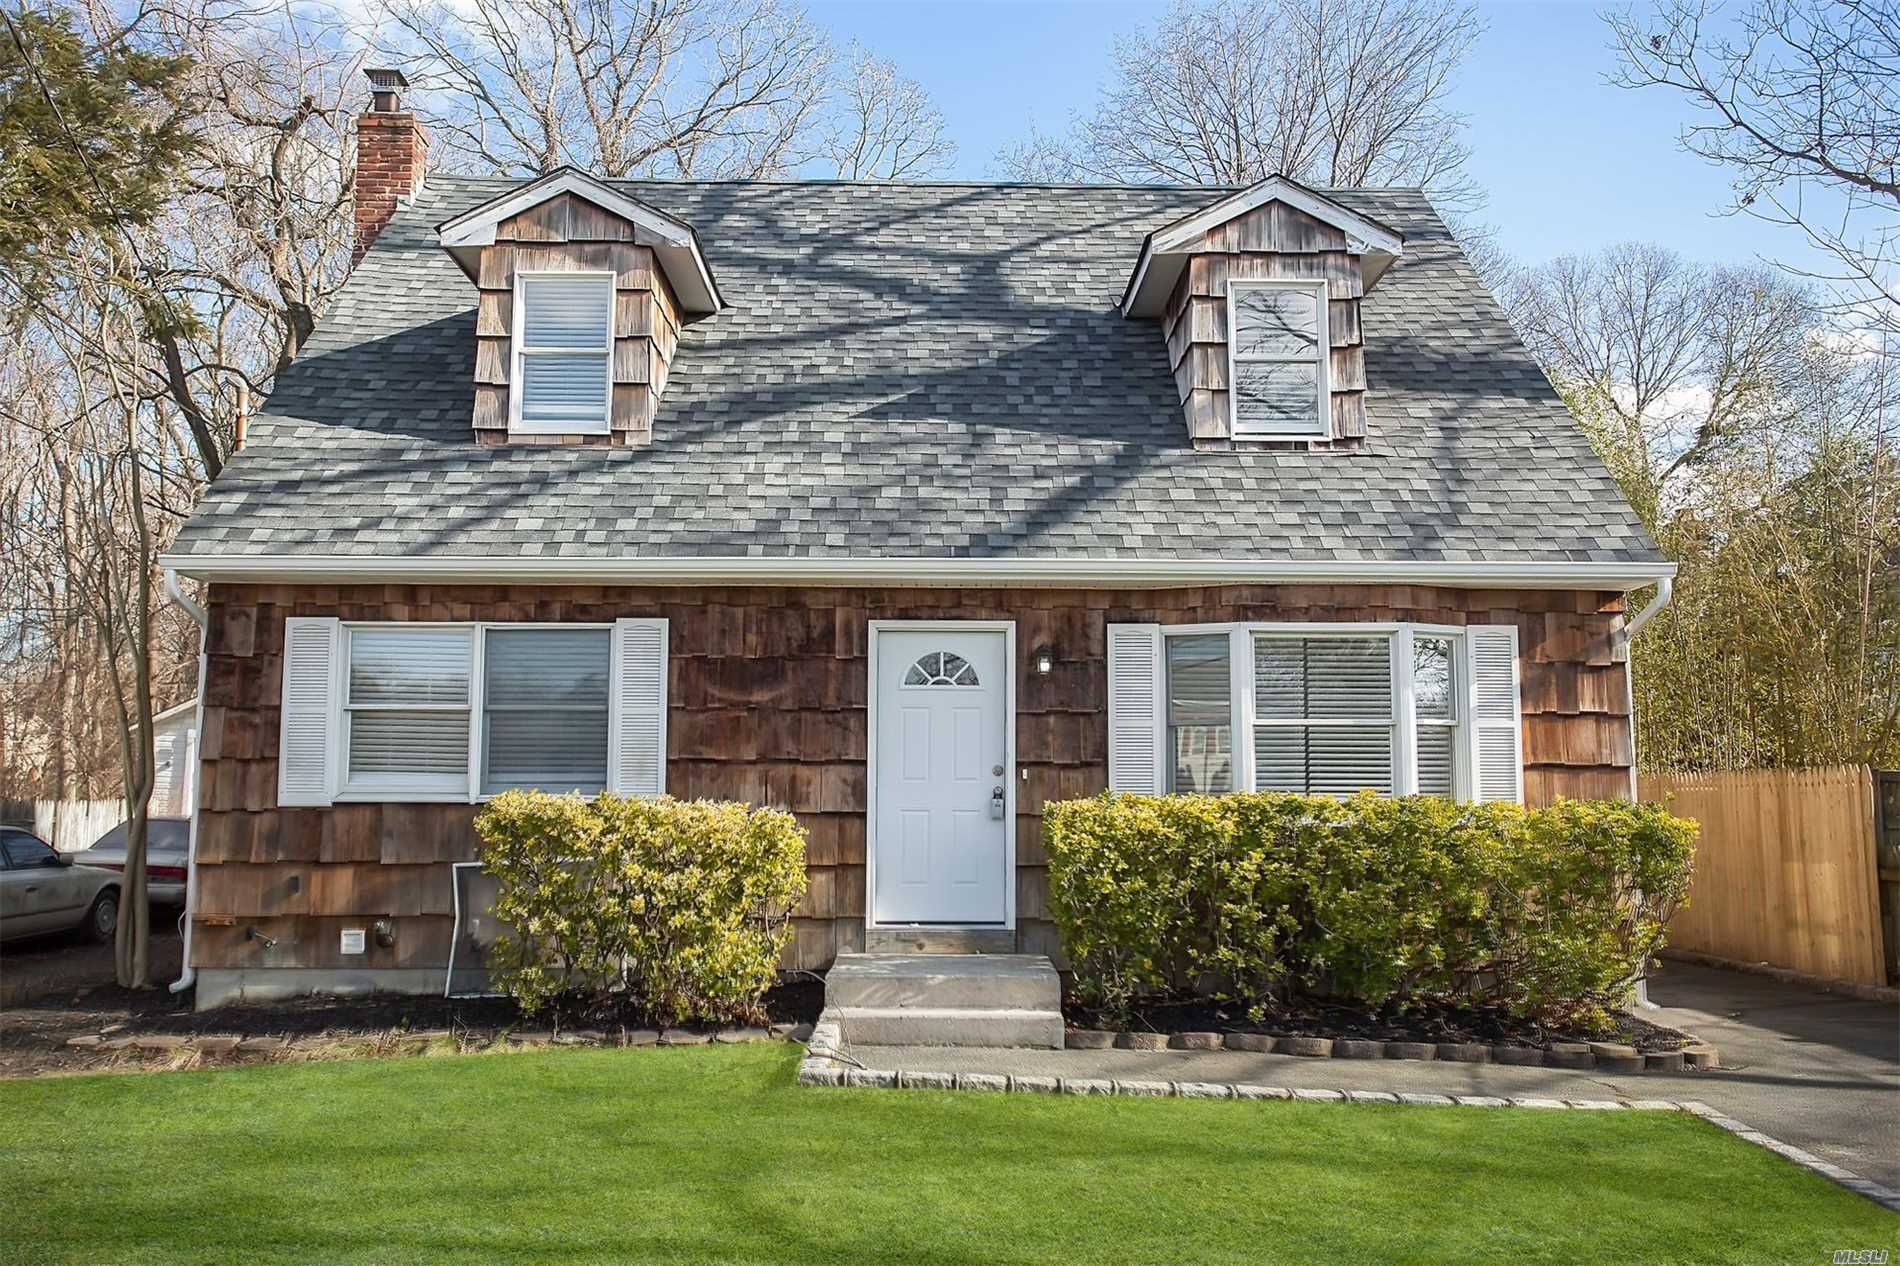 Nice Updated Cape W/ Fresh Paint & Carpets, Renovated Kitchen & Bathrooms! A Clean Slate To Add Your Personal Touches! Suffolk County Living At Your Fingertips W/ Everything Close By! Come & See What This Home Has To Offer!